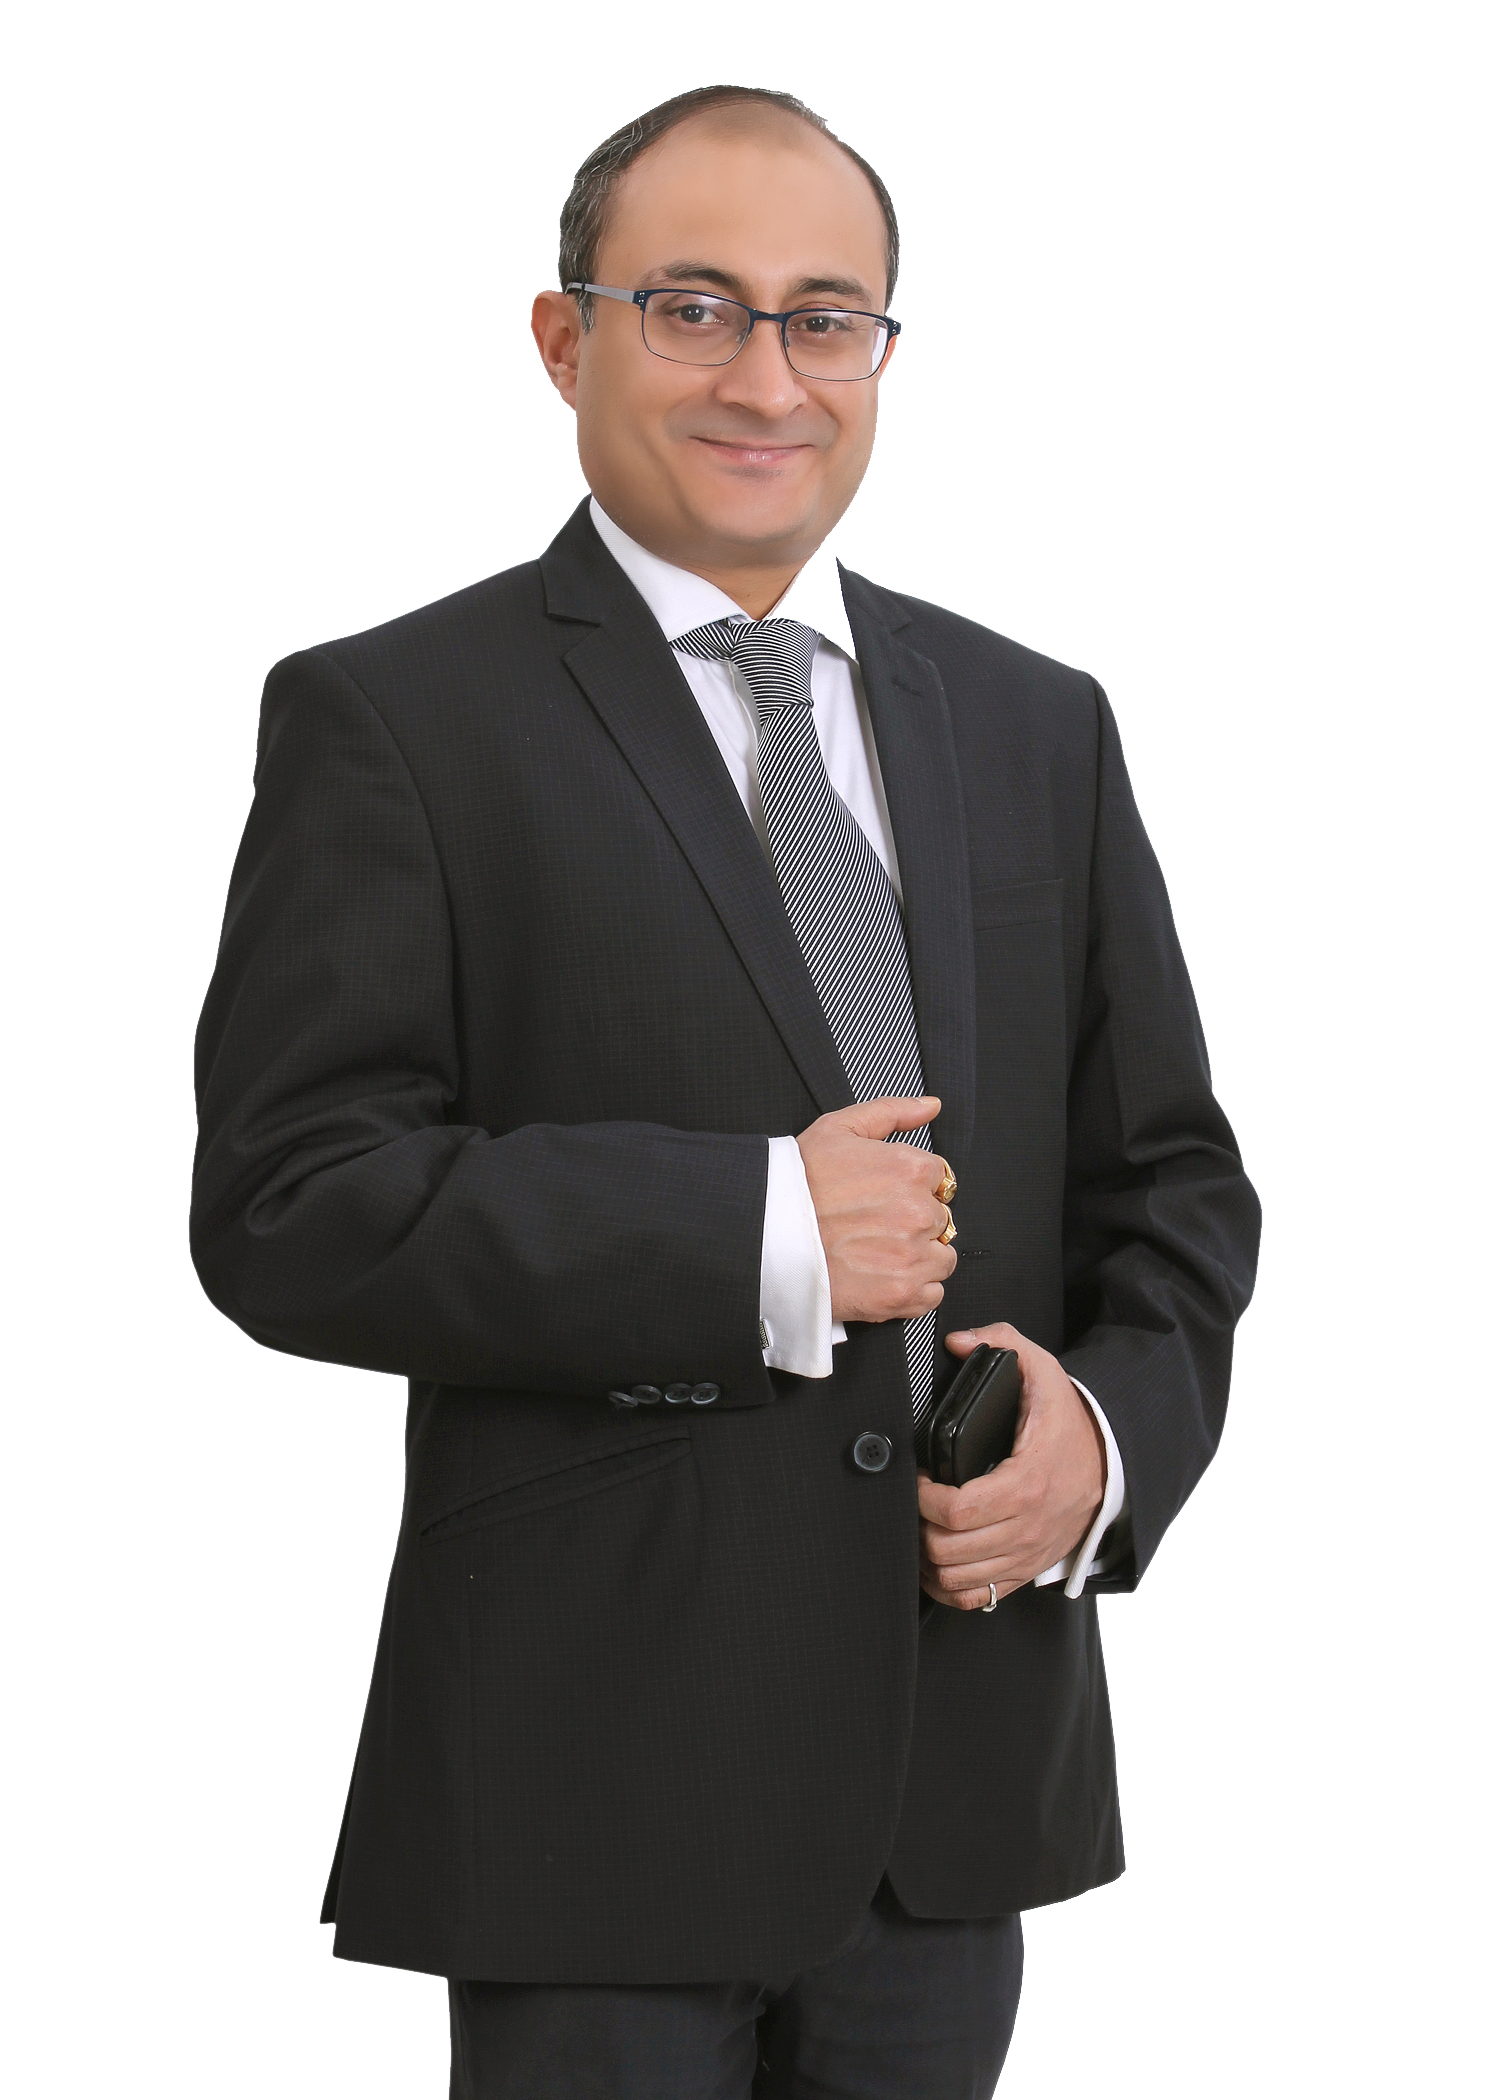 Vice President and Head of Finance in American Express India, joins